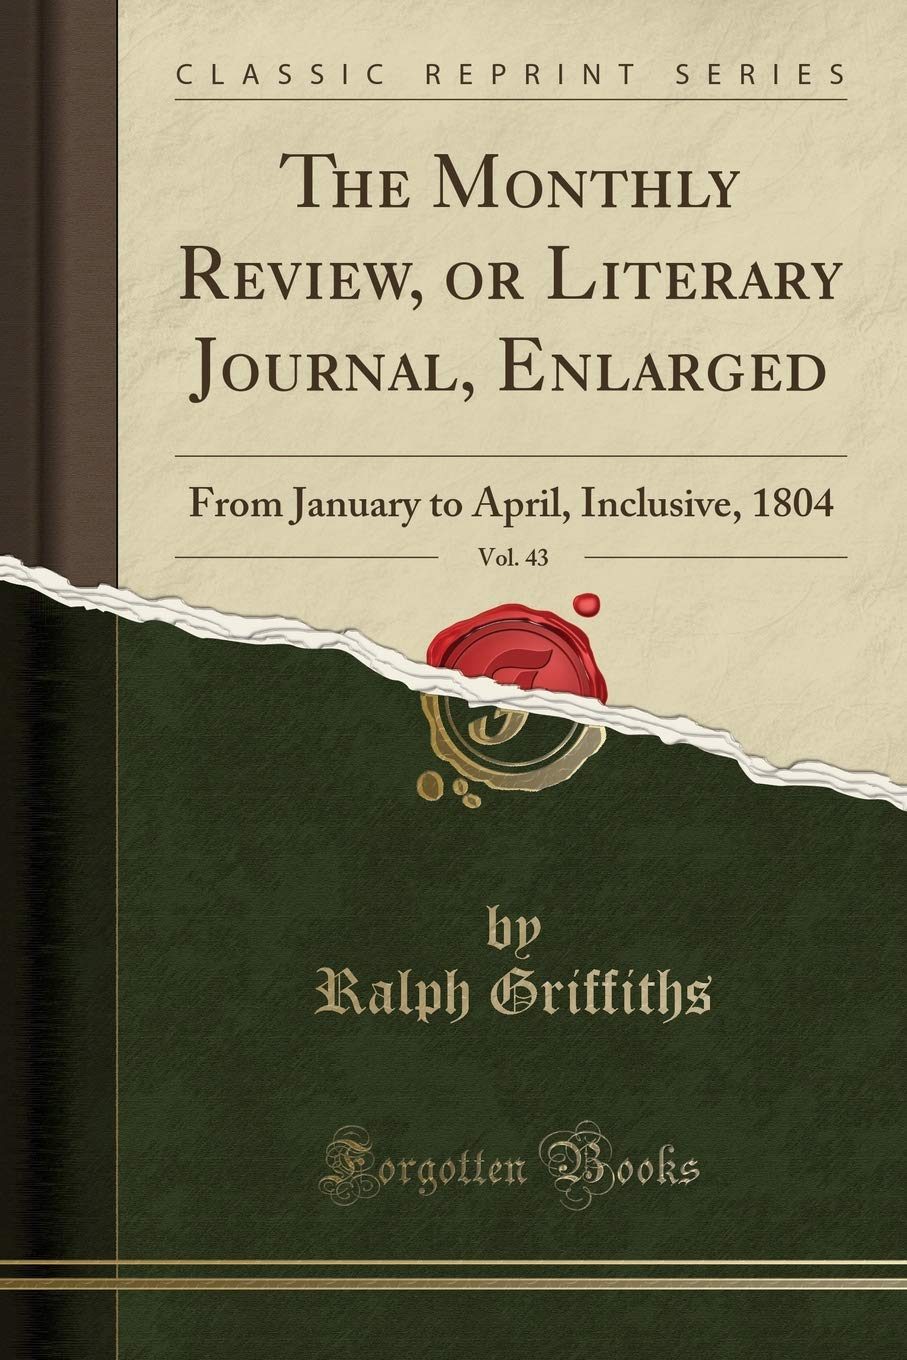 Download The Monthly Review, or Literary Journal, Enlarged, Vol. 43: From January to April, Inclusive, 1804 (Classic Reprint) PDF